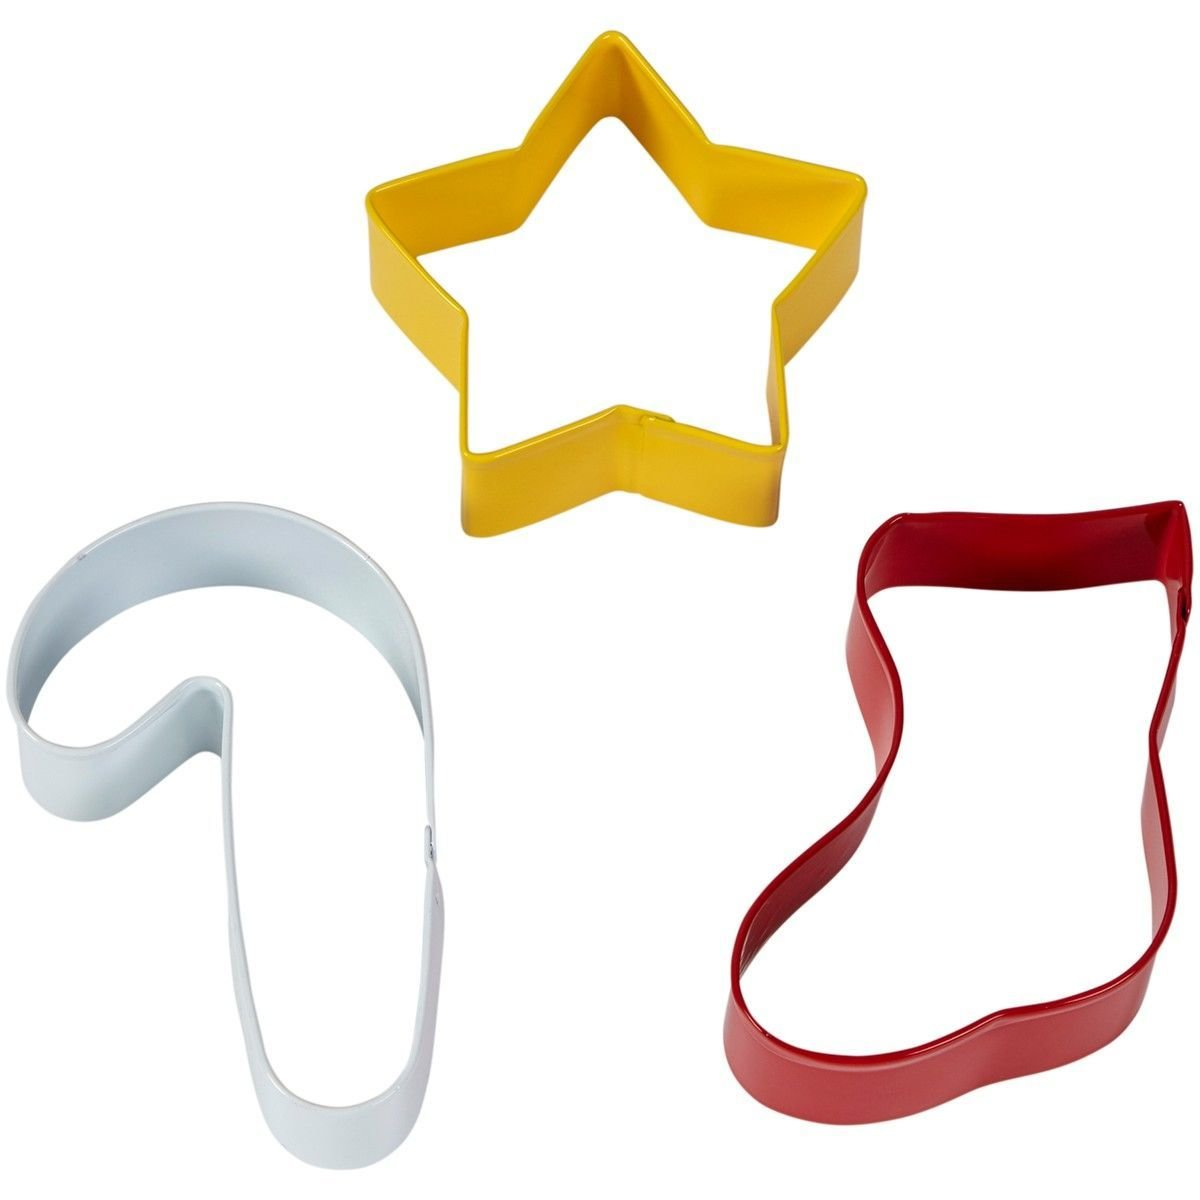 Wilton Christmas Cookie Cutter Set of 3 -STAR, STOCKING, CANDY CANE - Σετ 3τεμ Κουπ πατ Αστέρι, Κάλτσα, Γλειφιτζούρι